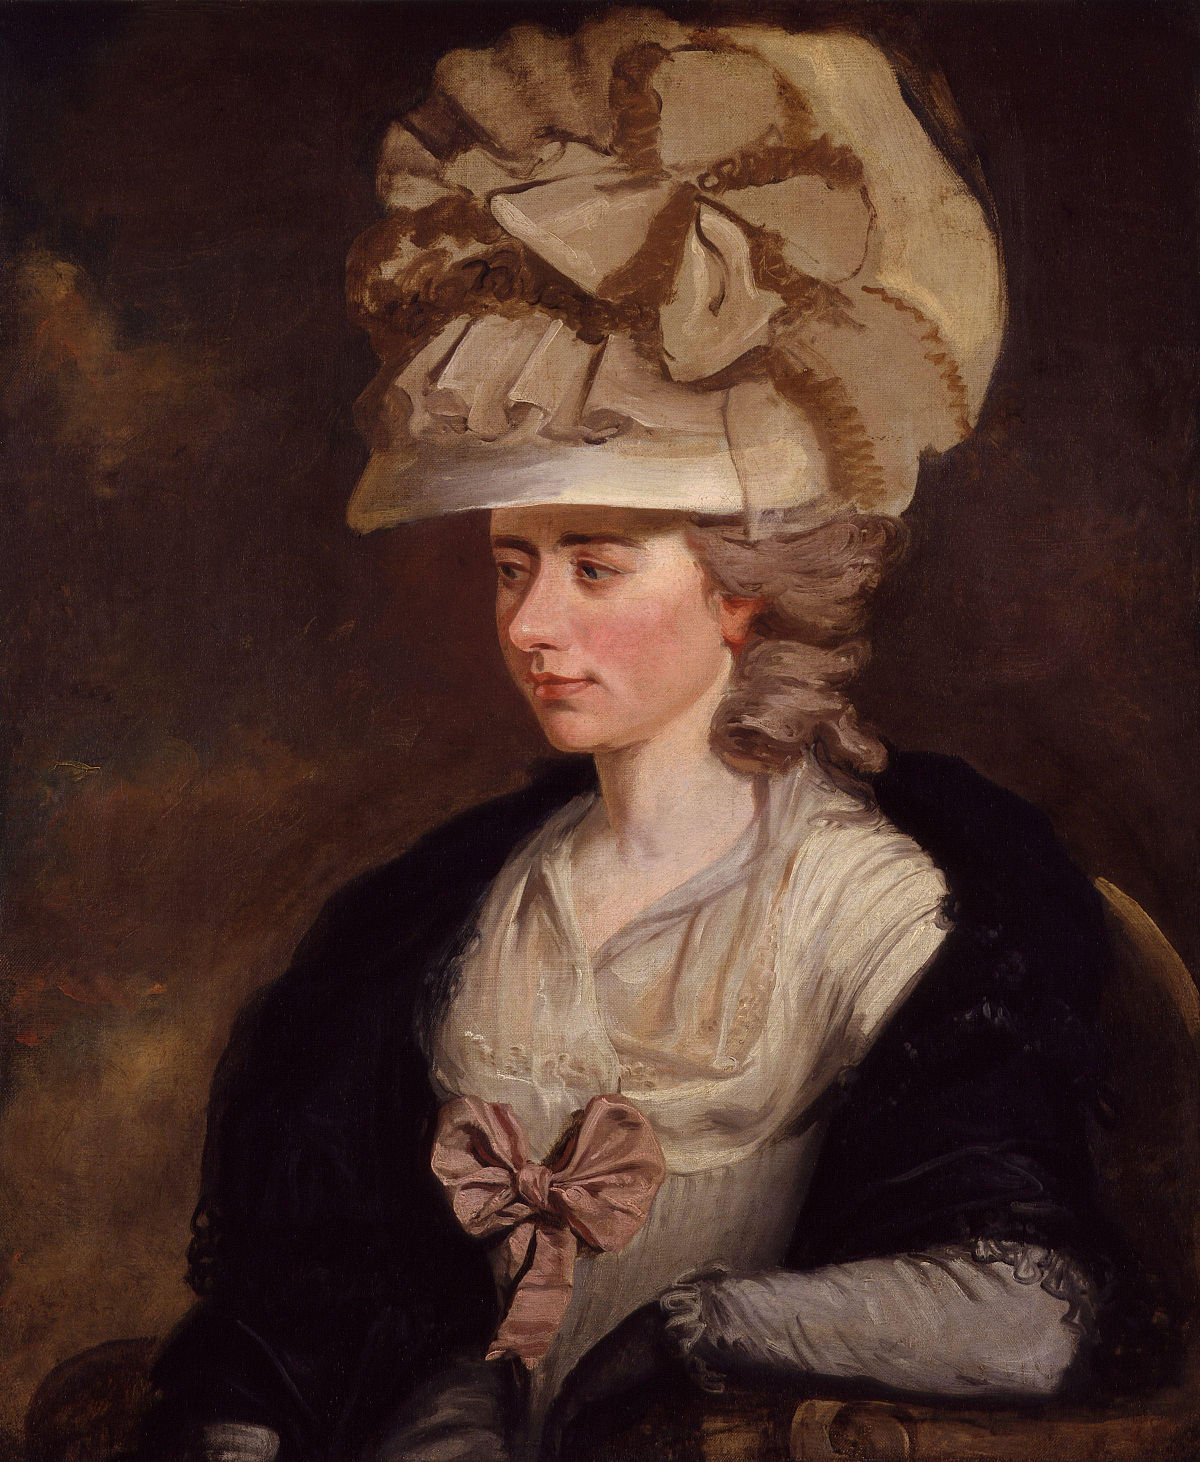 evelina by frances burney In this epistolary novel, we find a young woman named evelina, who was raised in rural seclusion until her eighteenth year because of her uncertain parentage.